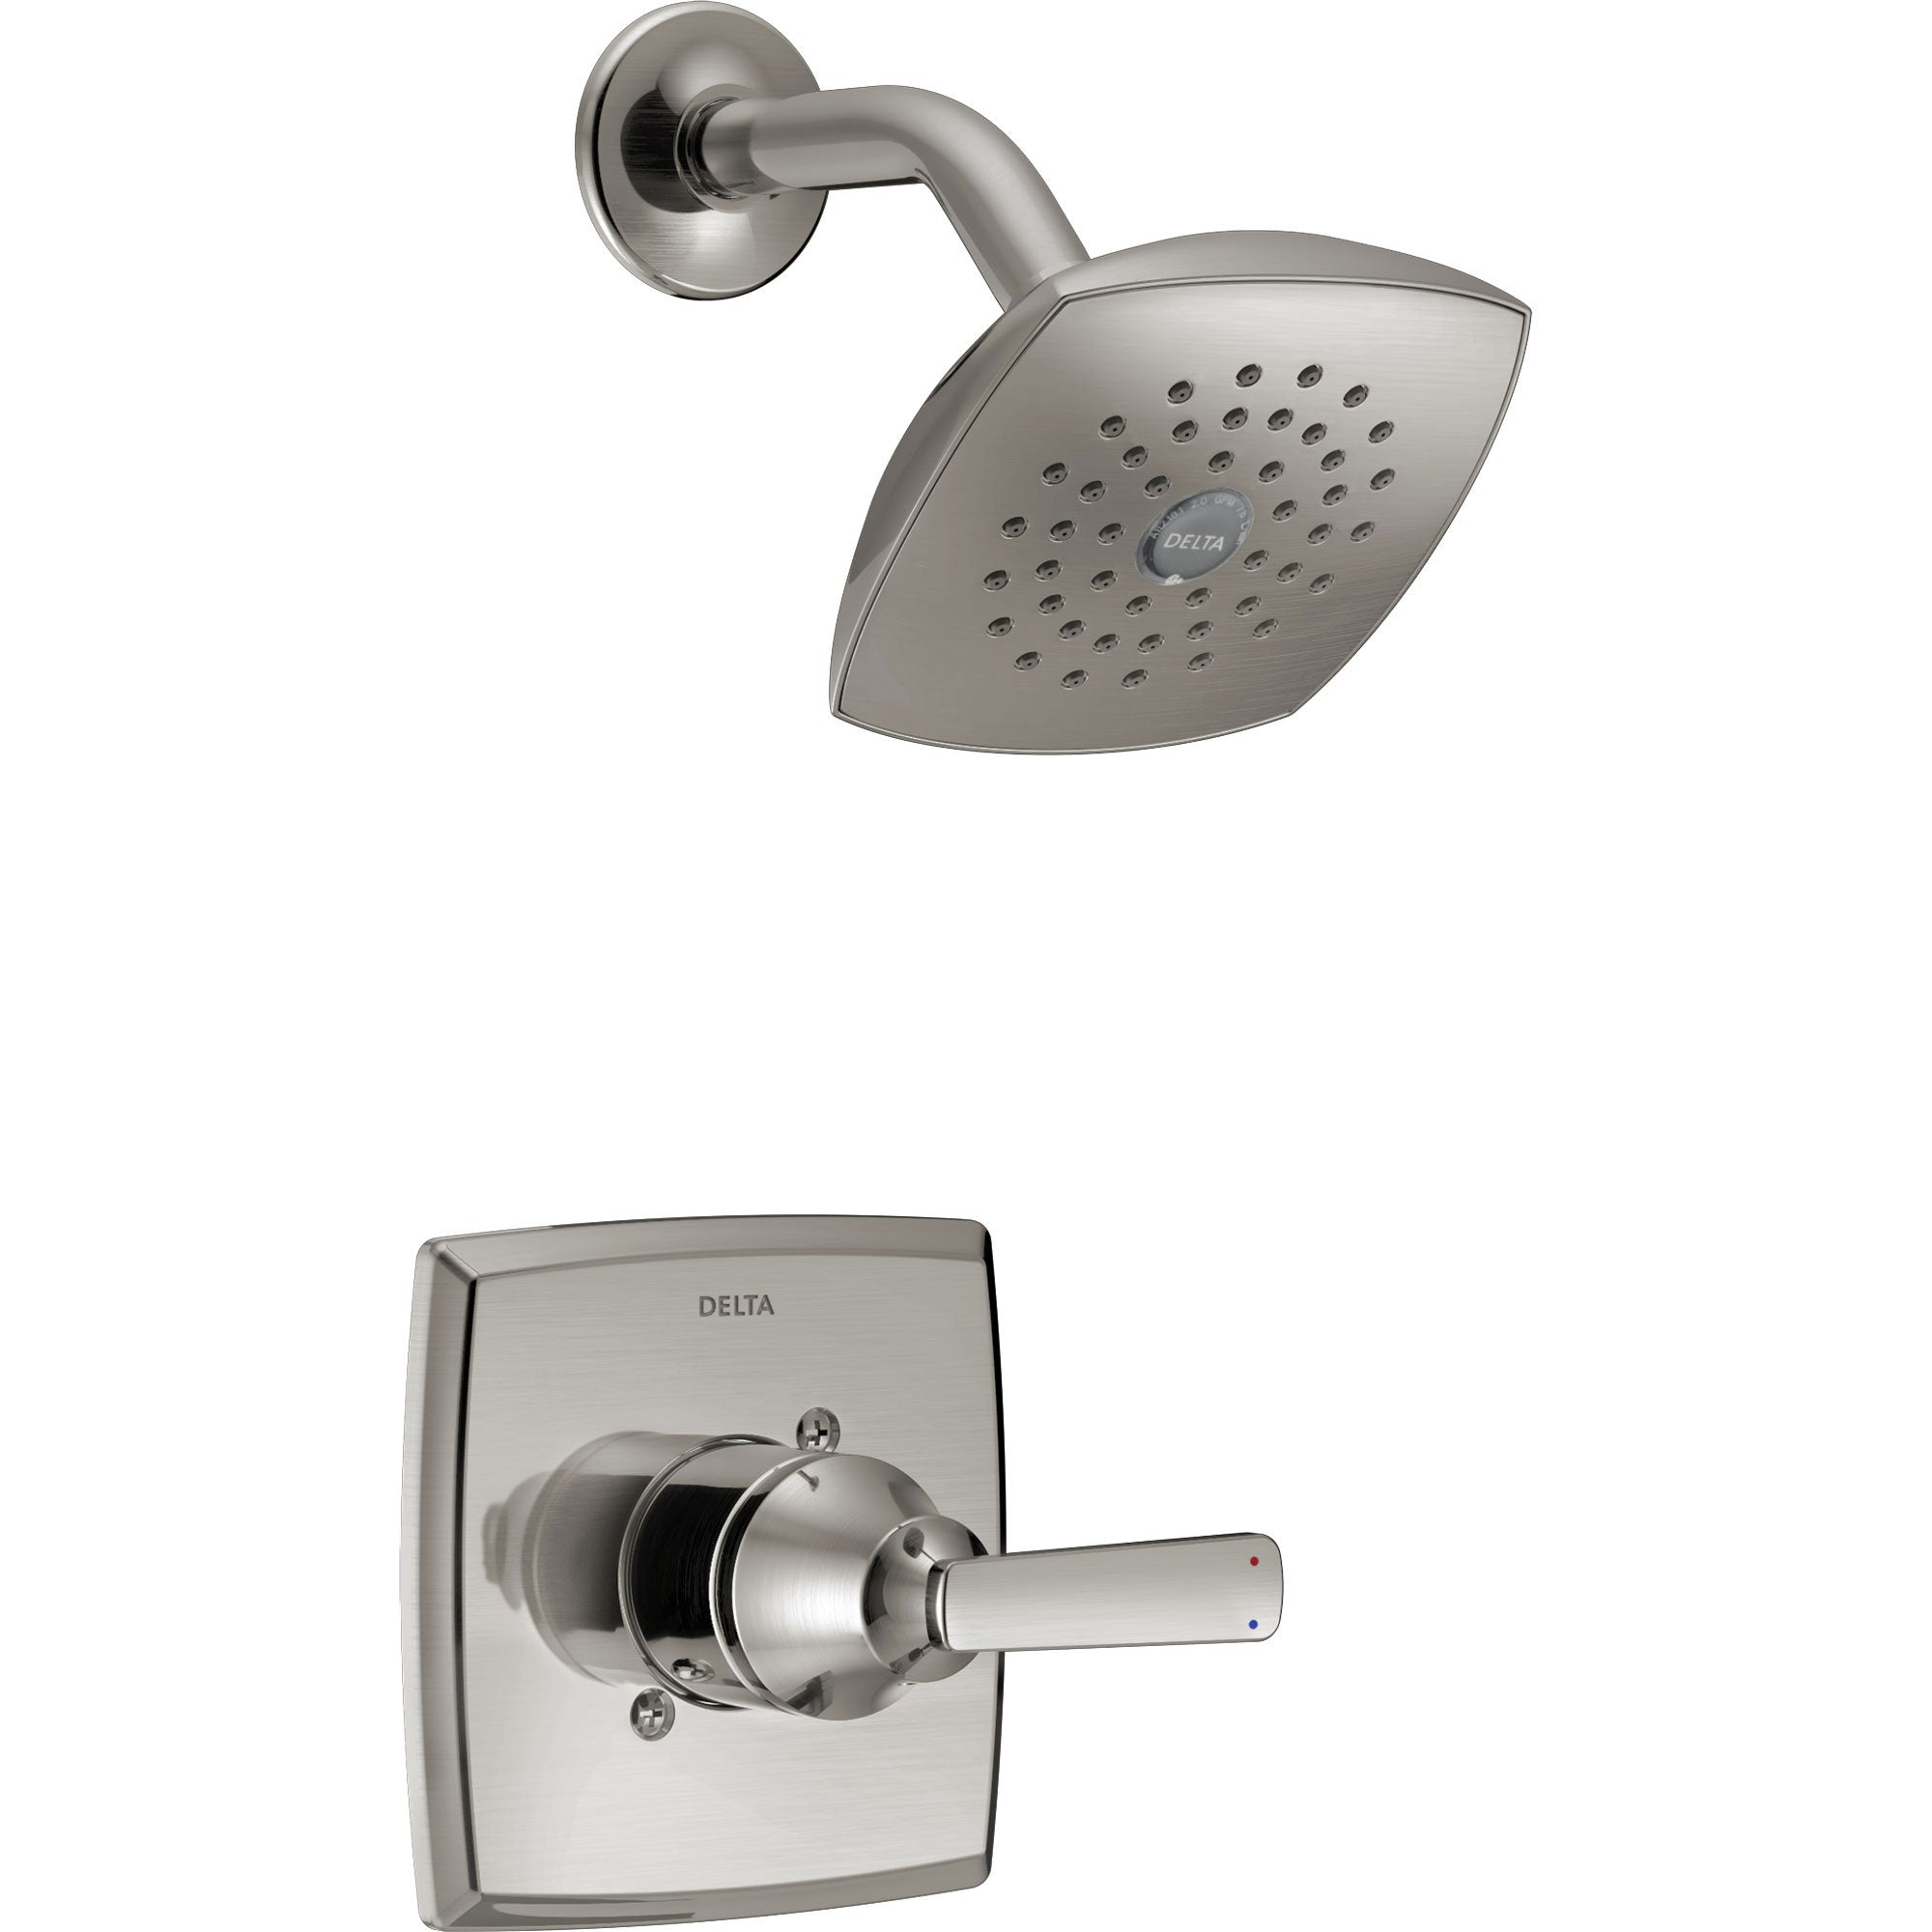 Delta Ashlyn Modern 14 Series Watersense Stainless Steel Finish Single Handle Shower Only Faucet INCLUDES Rough-in Valve D1230V